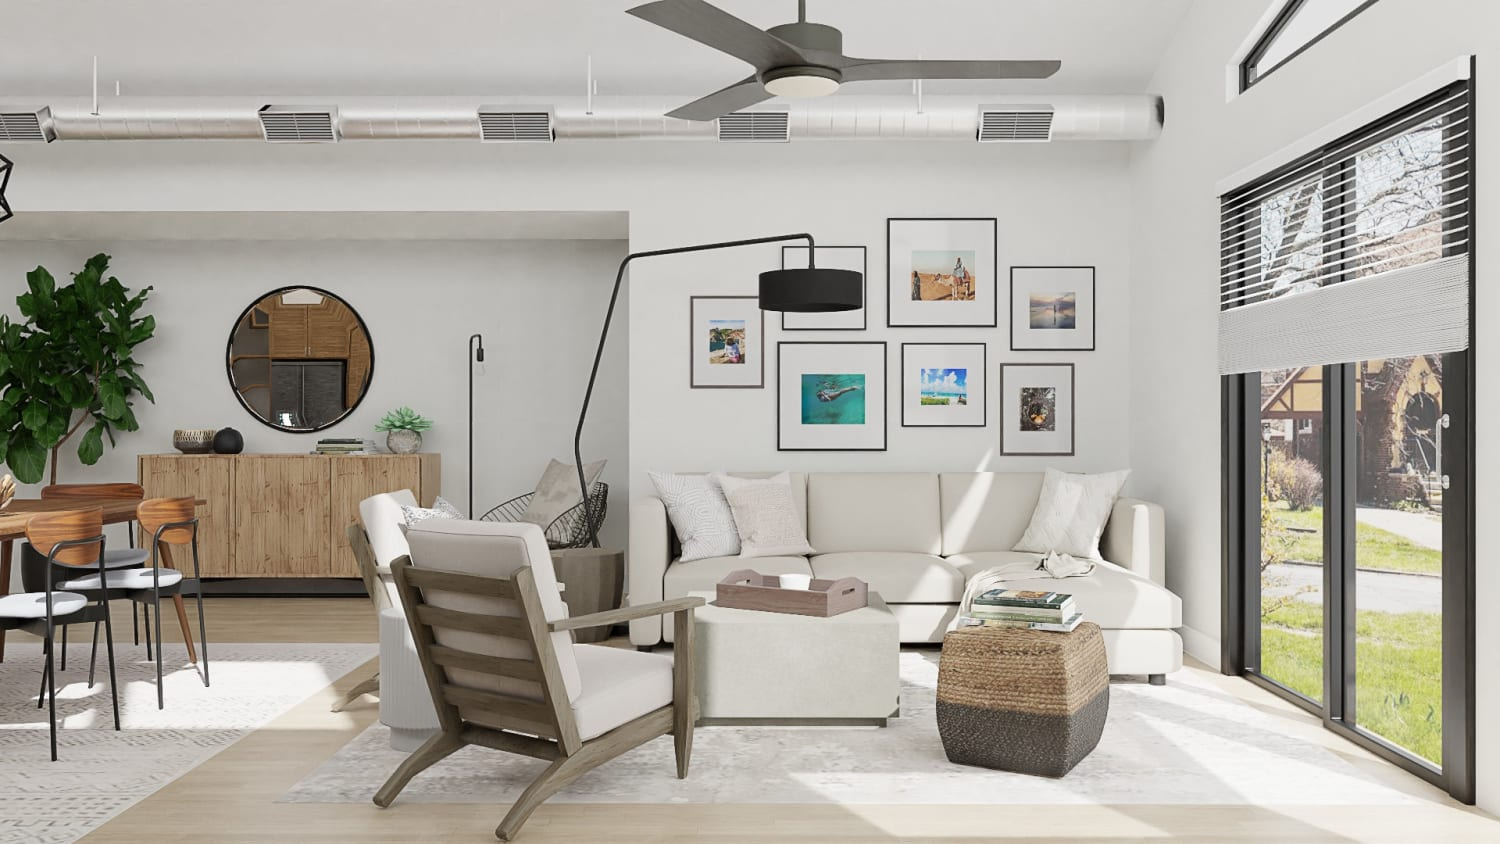 Get Inspiration From Open Plan Urban Modern Living And Dining Room Design By Spacejoy